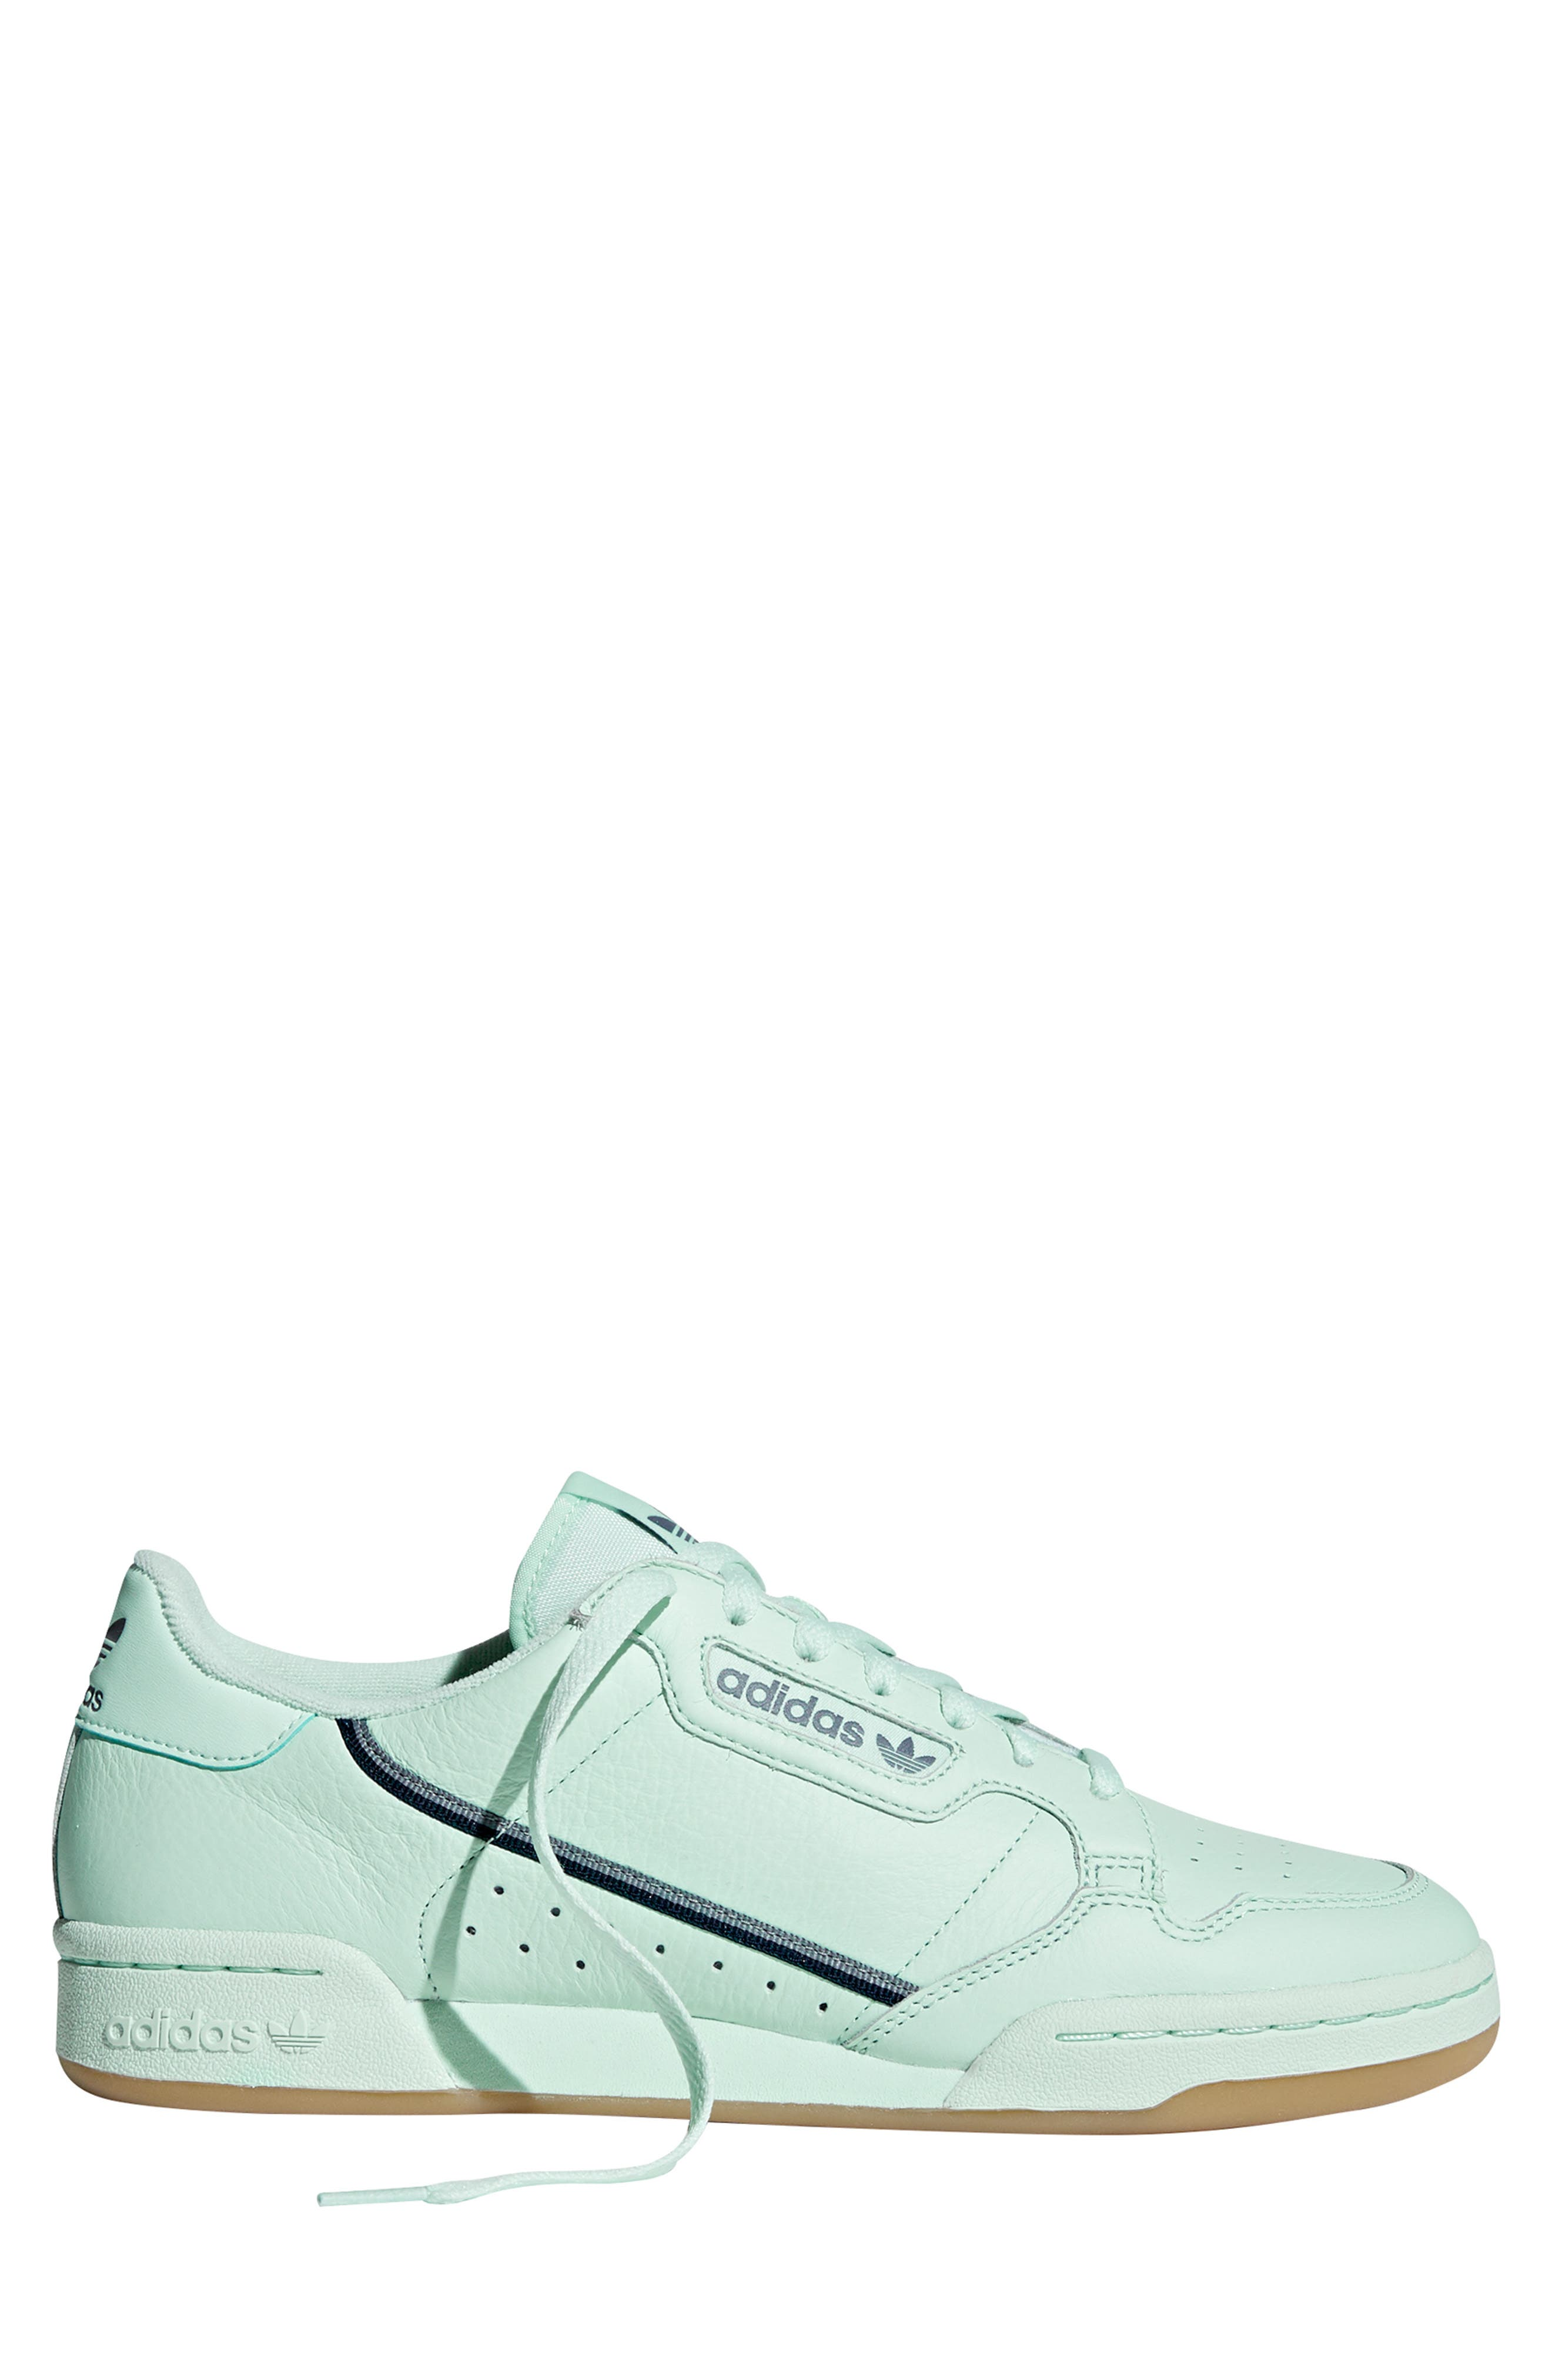 ADIDAS, Continental 80 Sneaker, Alternate thumbnail 7, color, ICE MINT/ NAVY/ GREY